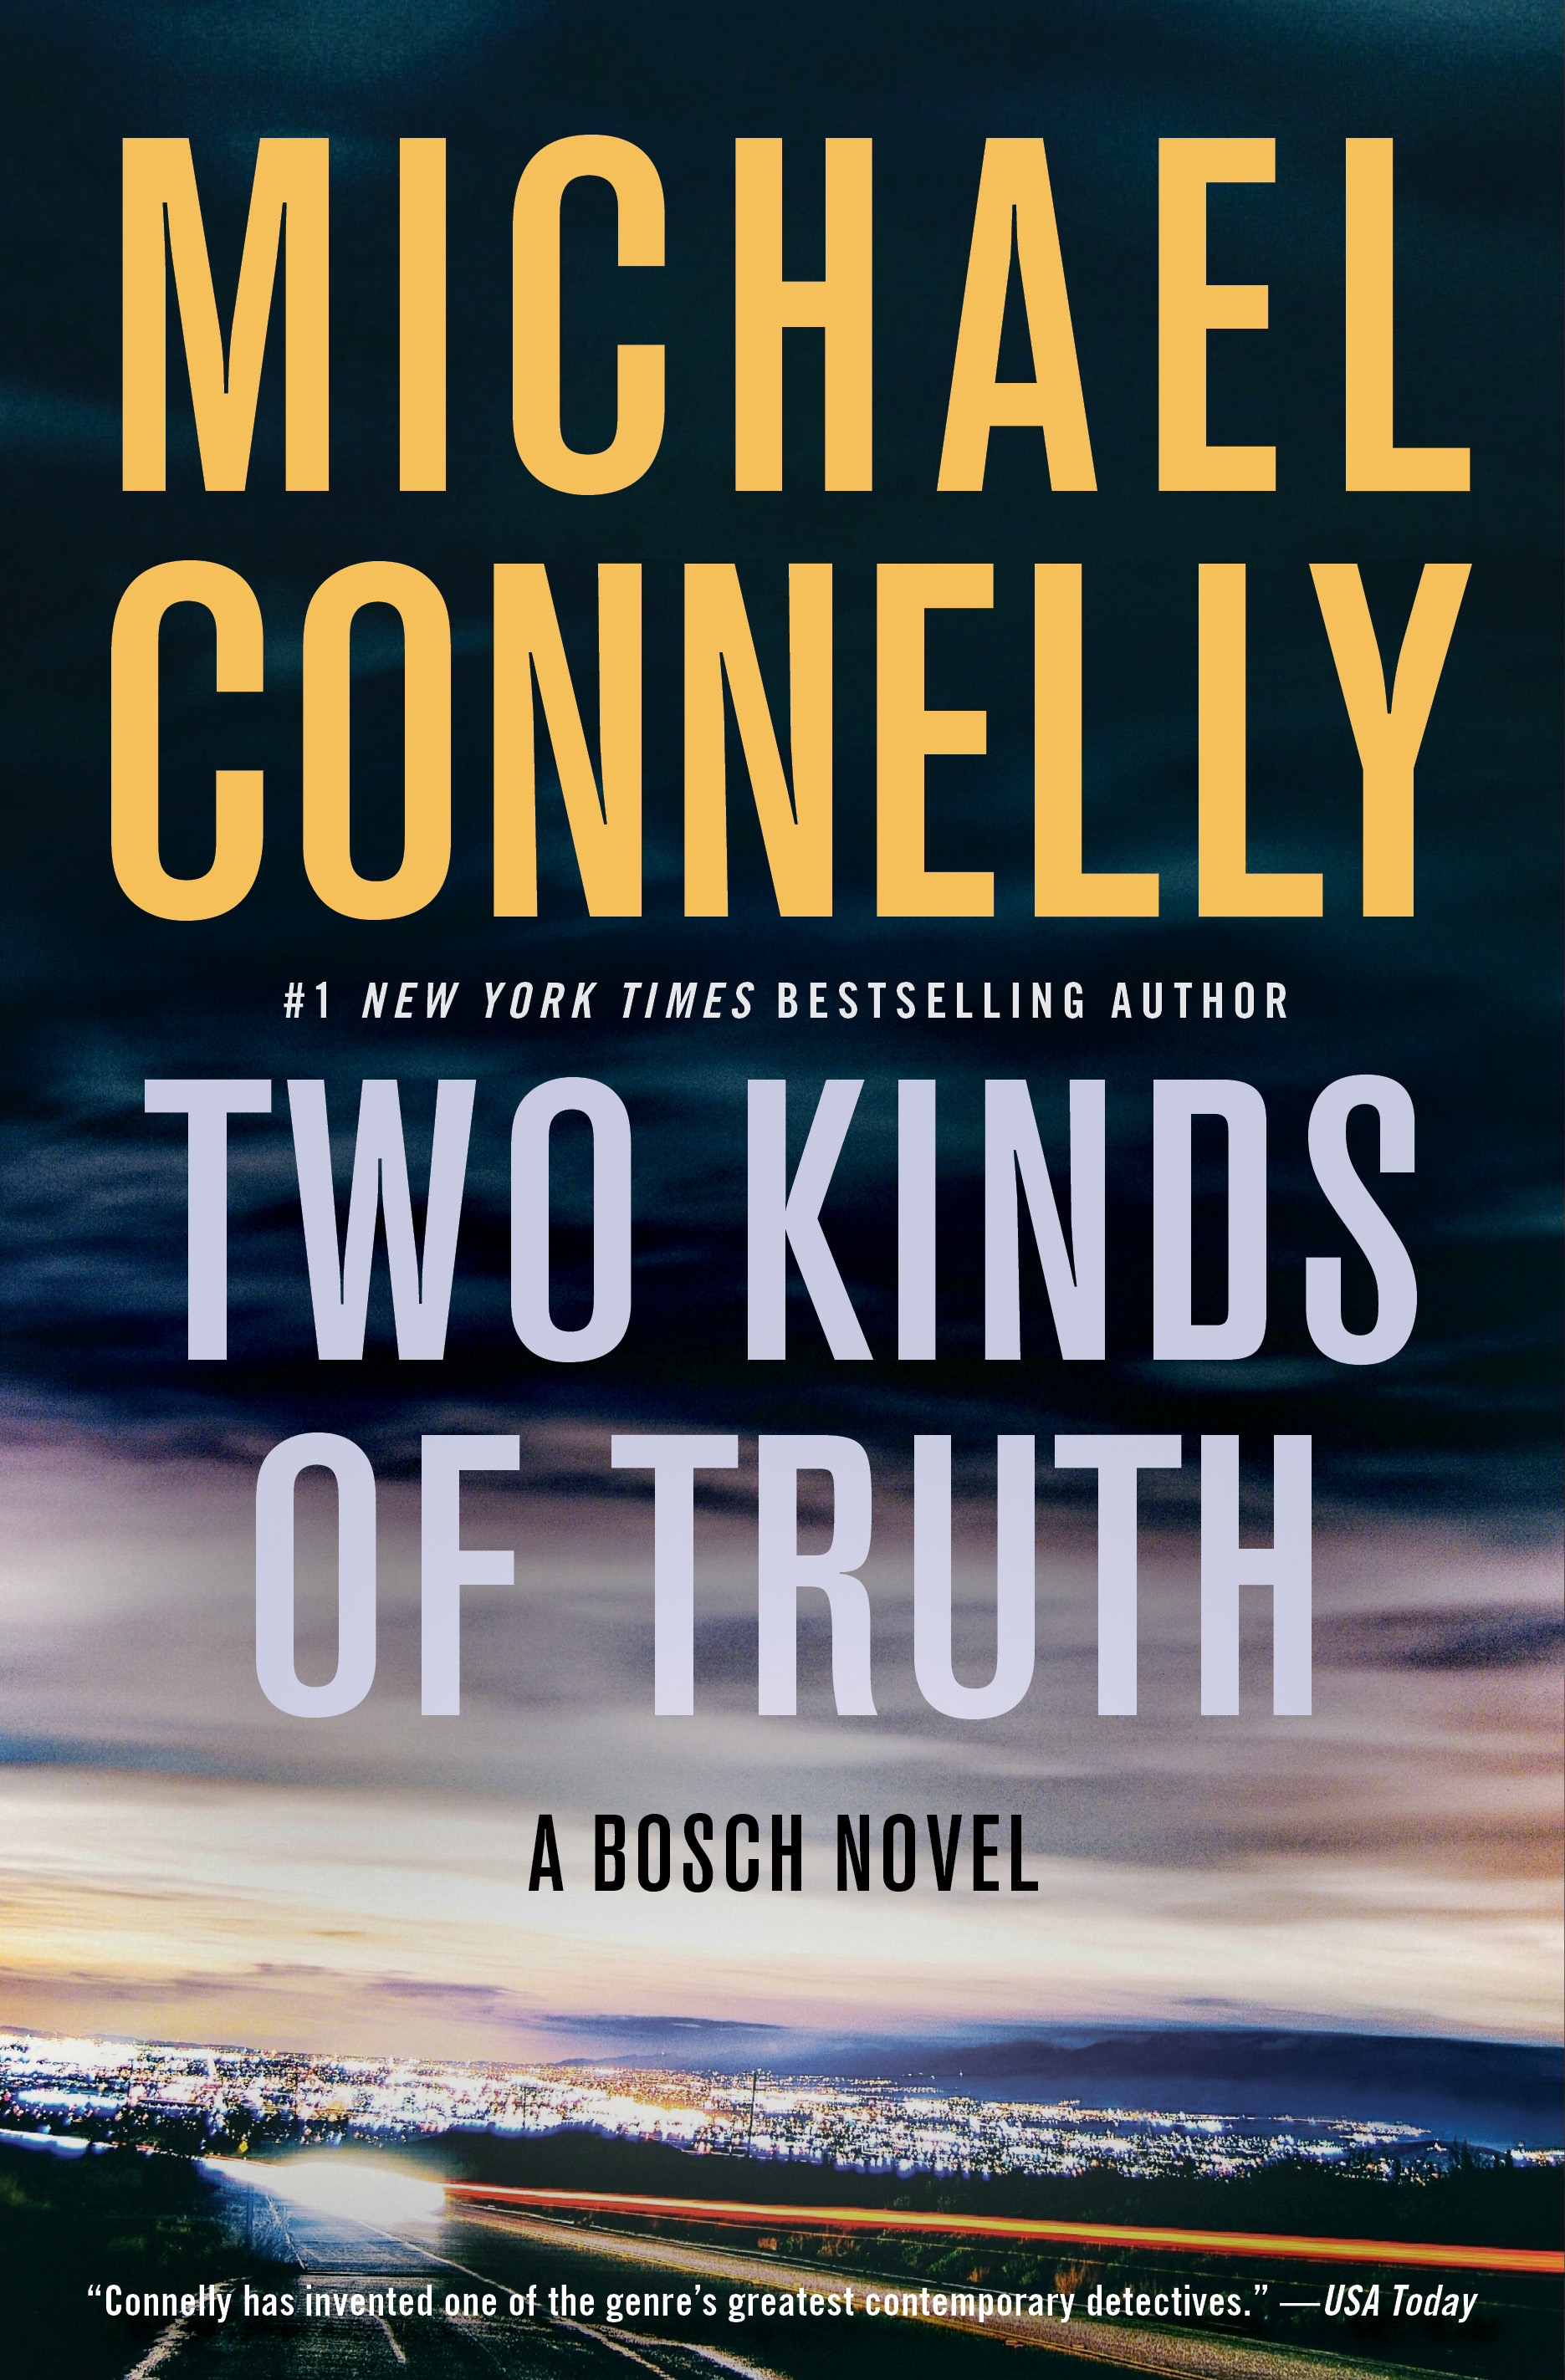 Two Kinds of TruthMichael Connelly